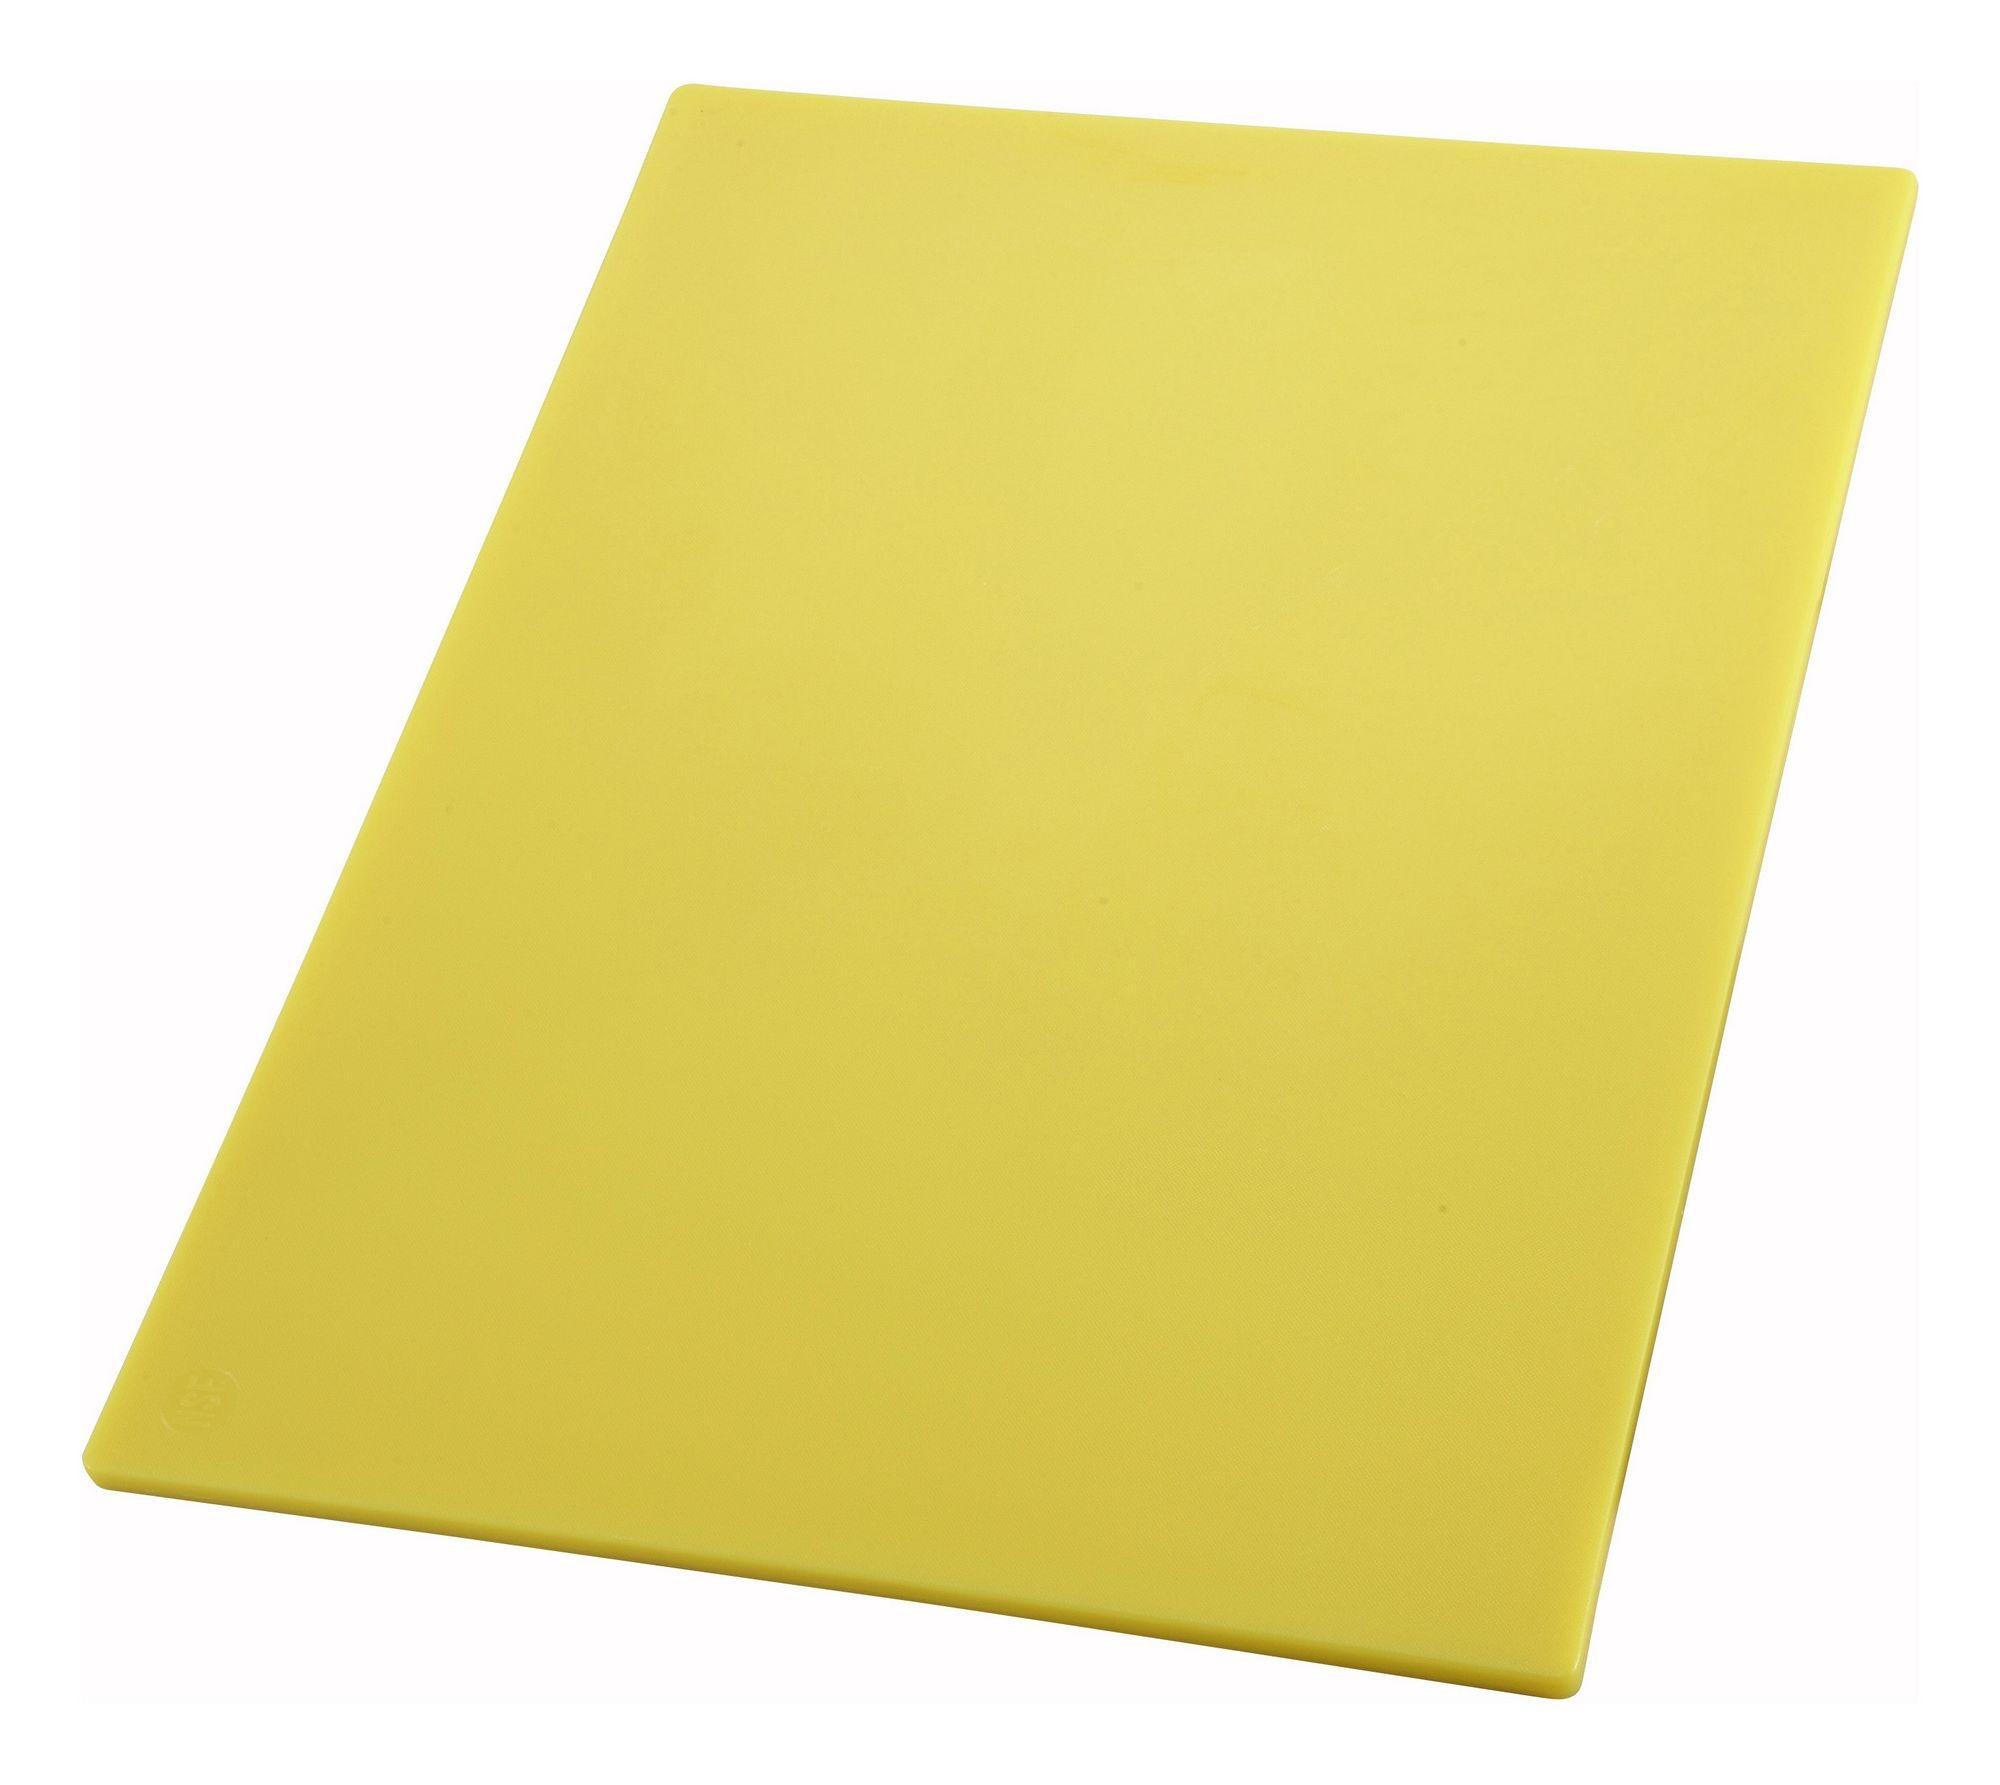 15x20x1/2 Cutting Board Yellow (Raw Poultry & Chicken Board)